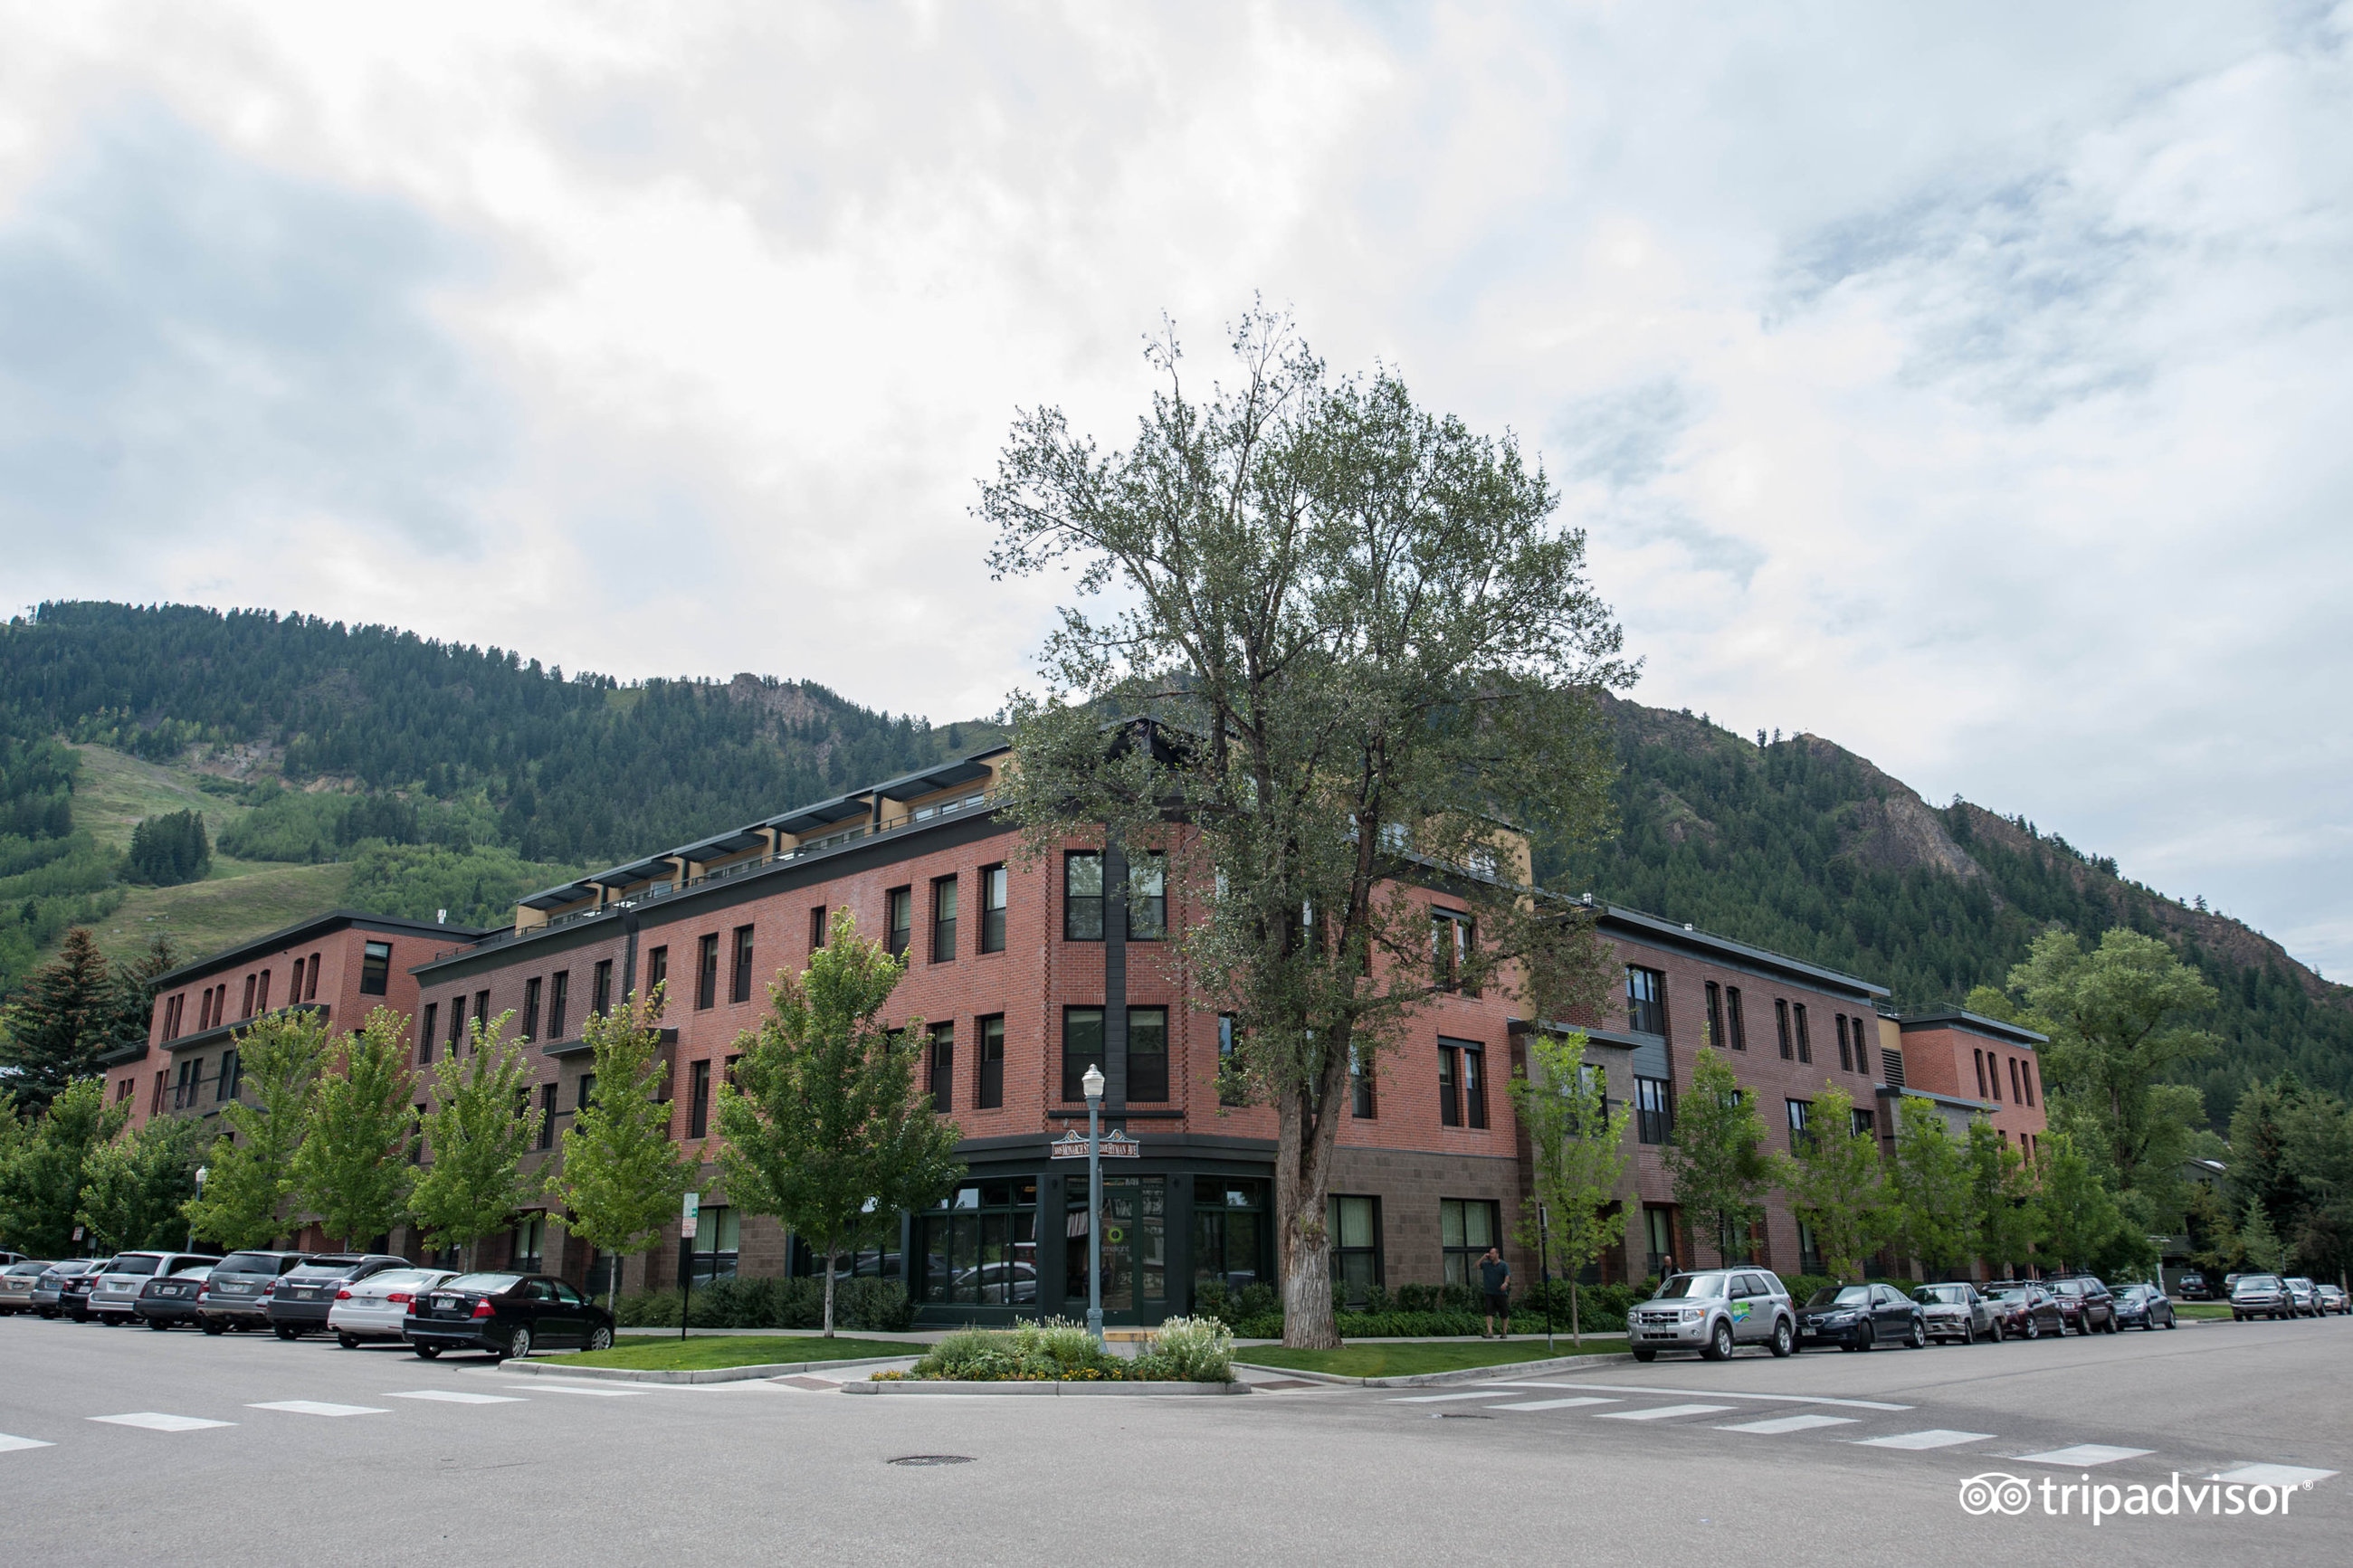 Limelight Hotel Aspen Co 2018 Review Family Vacation